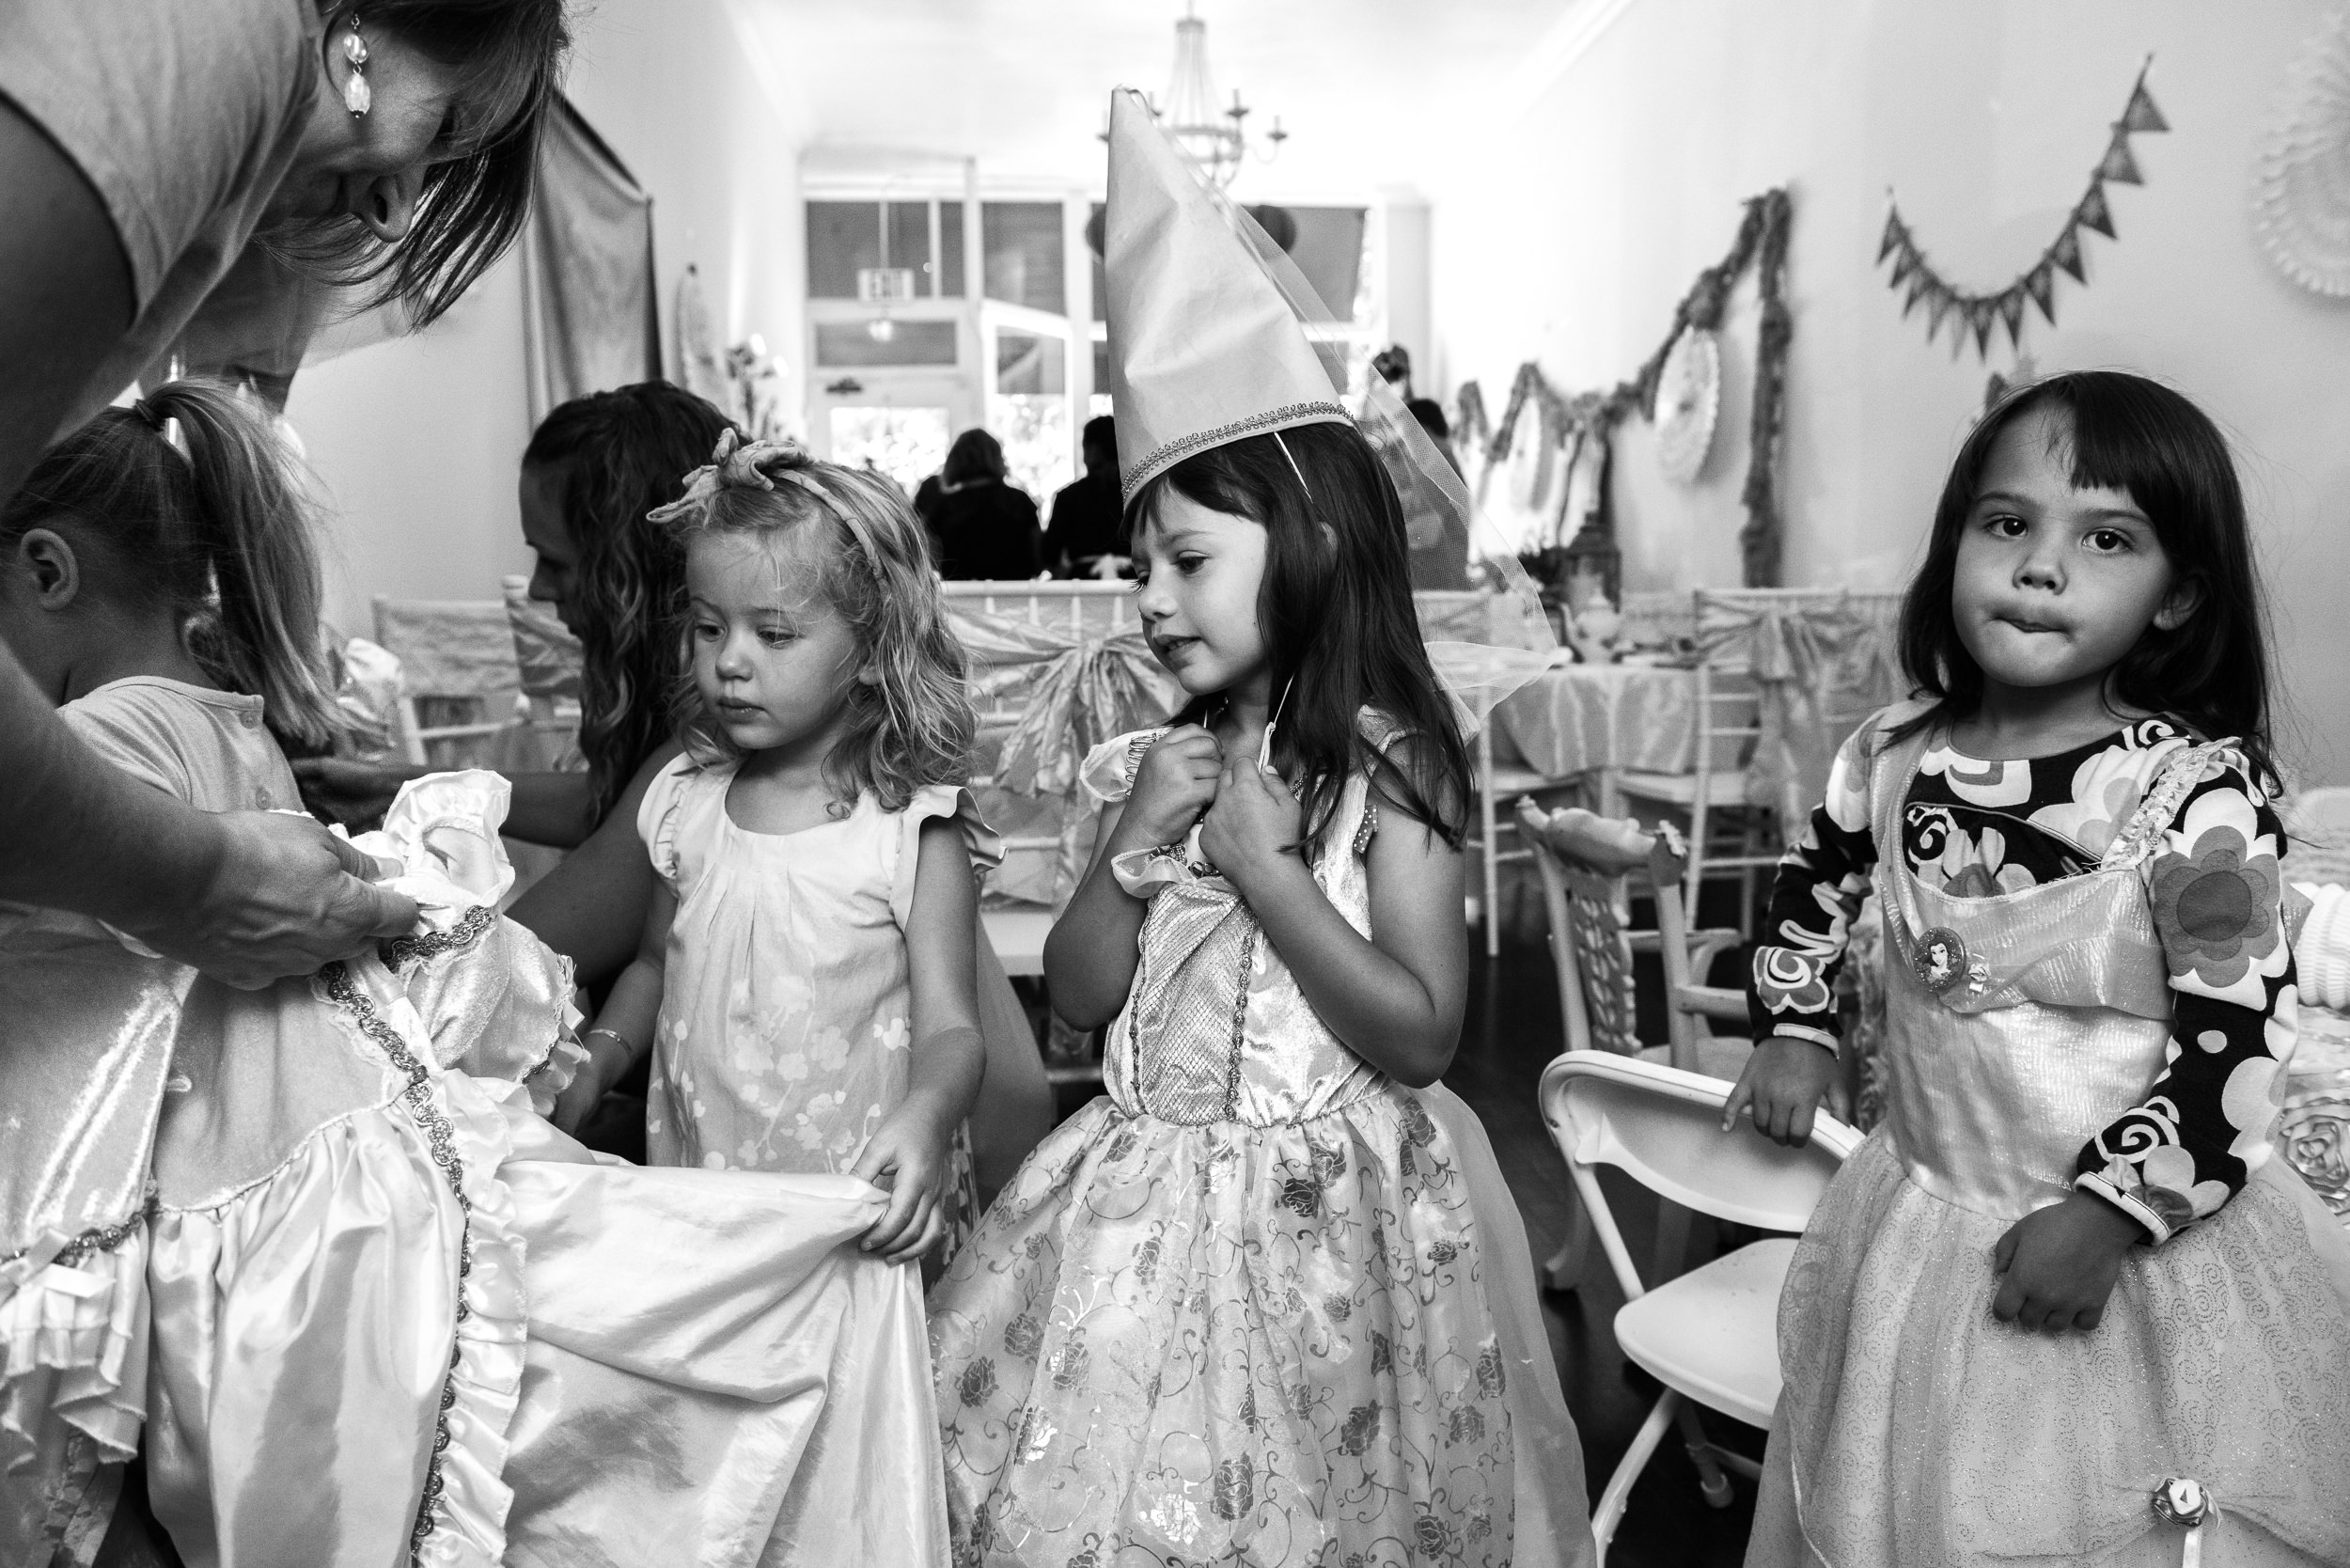 Molly Rees Photo - Black and White Documentary Family Photography in Denver, Colorado - birthday party girls in princess dresses at Wands and Wishes Occasions by M. Menschel